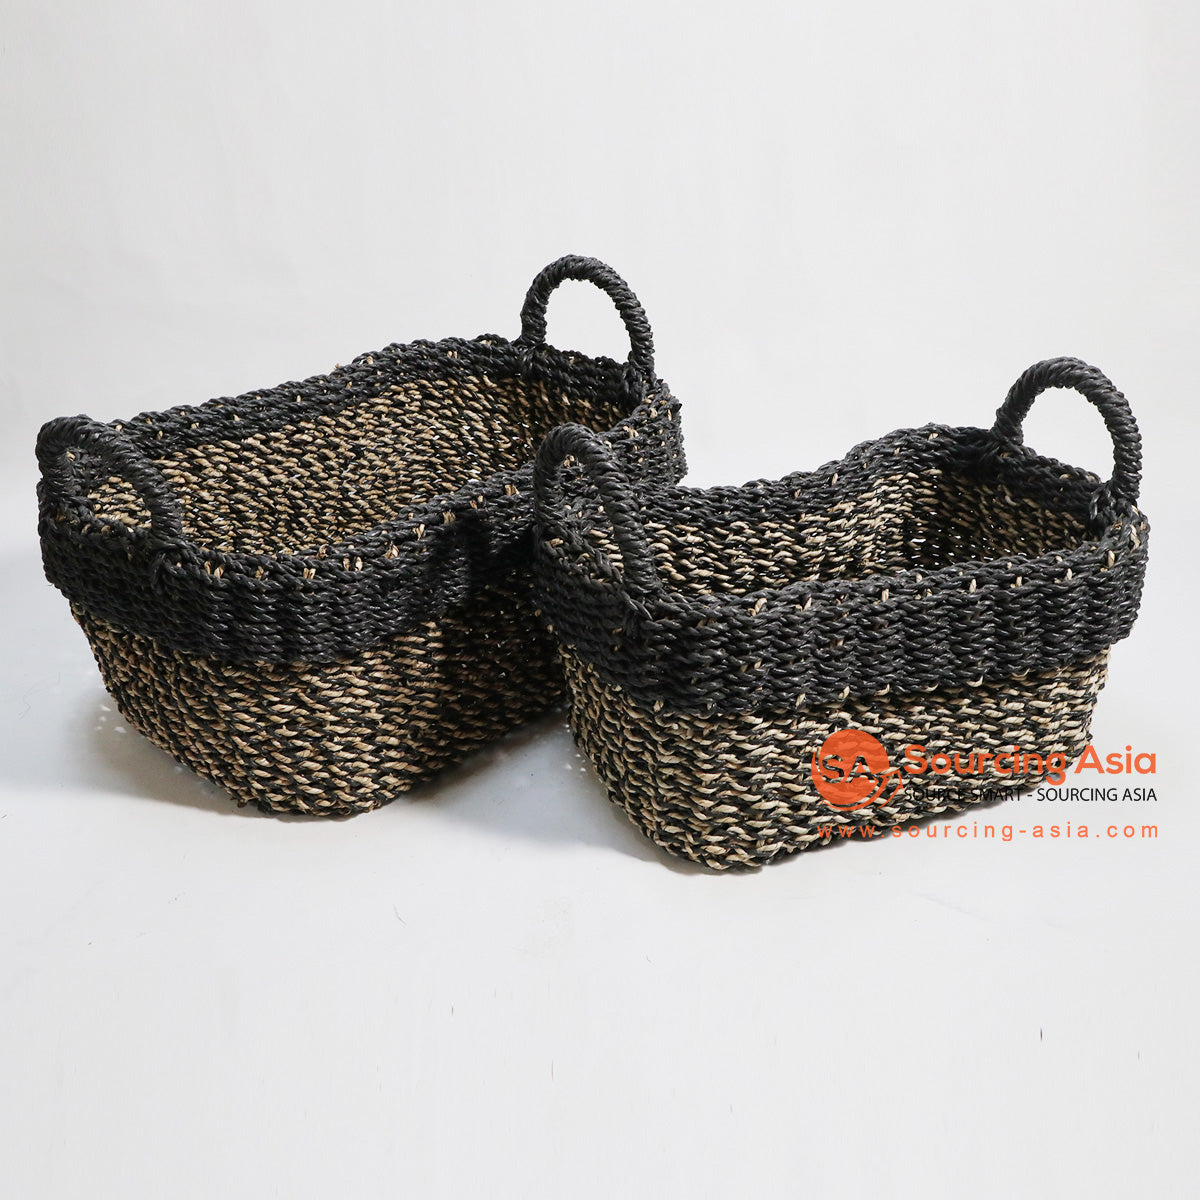 HBSC134 SET OF 2 SEA GRASS NATURAL AND BLACK BASKETS